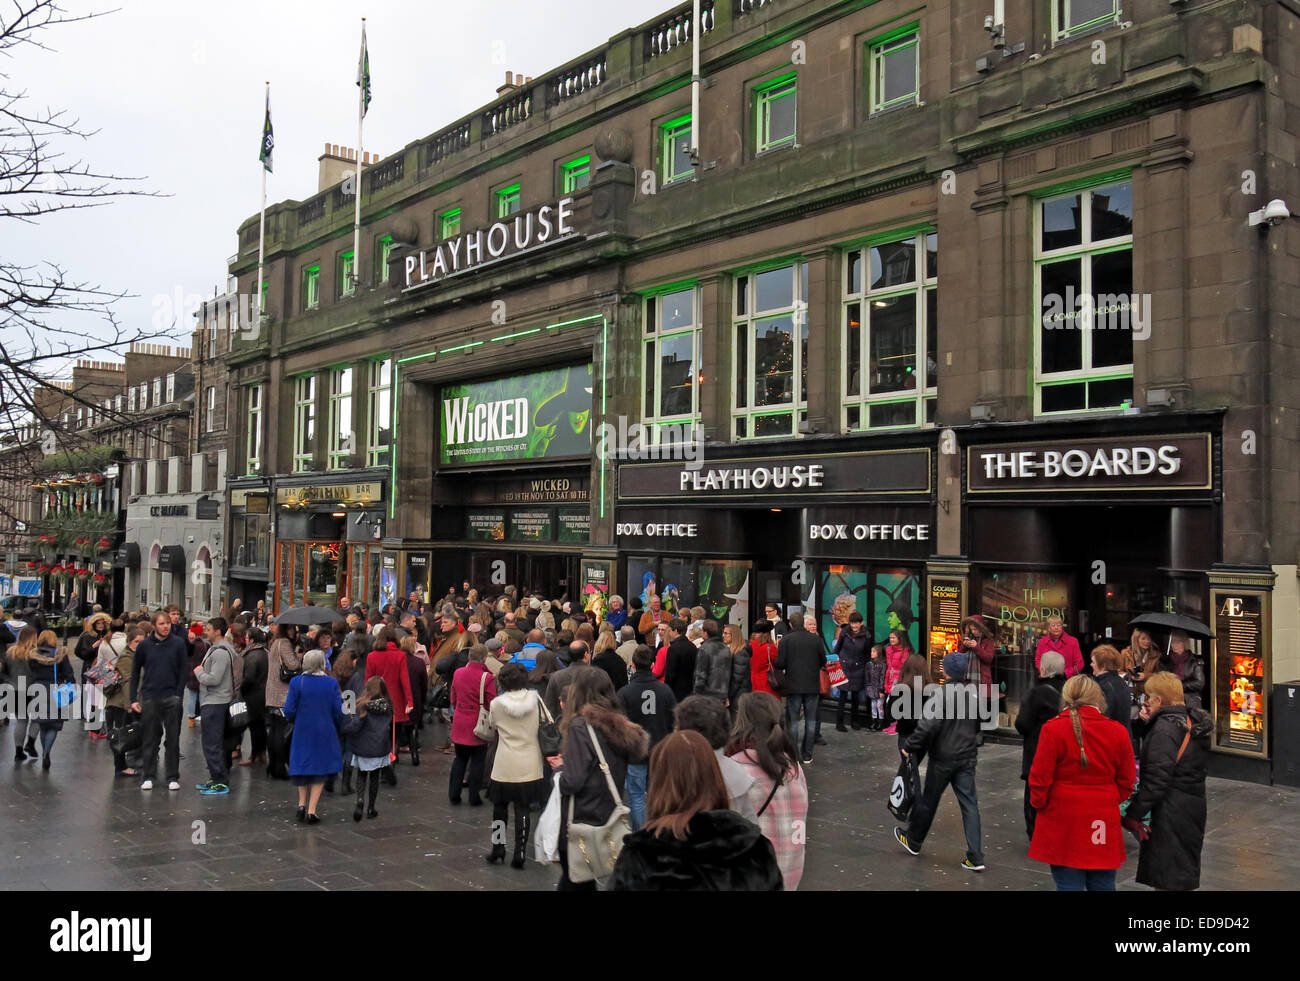 Arts,movement,entertainment,building street,streets in Scotland,Scottish,winter,play,travel,traveller,tourism,tourist,the,production,of,Wicked,Scotland,UK,Actor,Actors,boards,comedy,venue,capital,city,Gotonysmith,Buy Pictures of,Buy Images Of